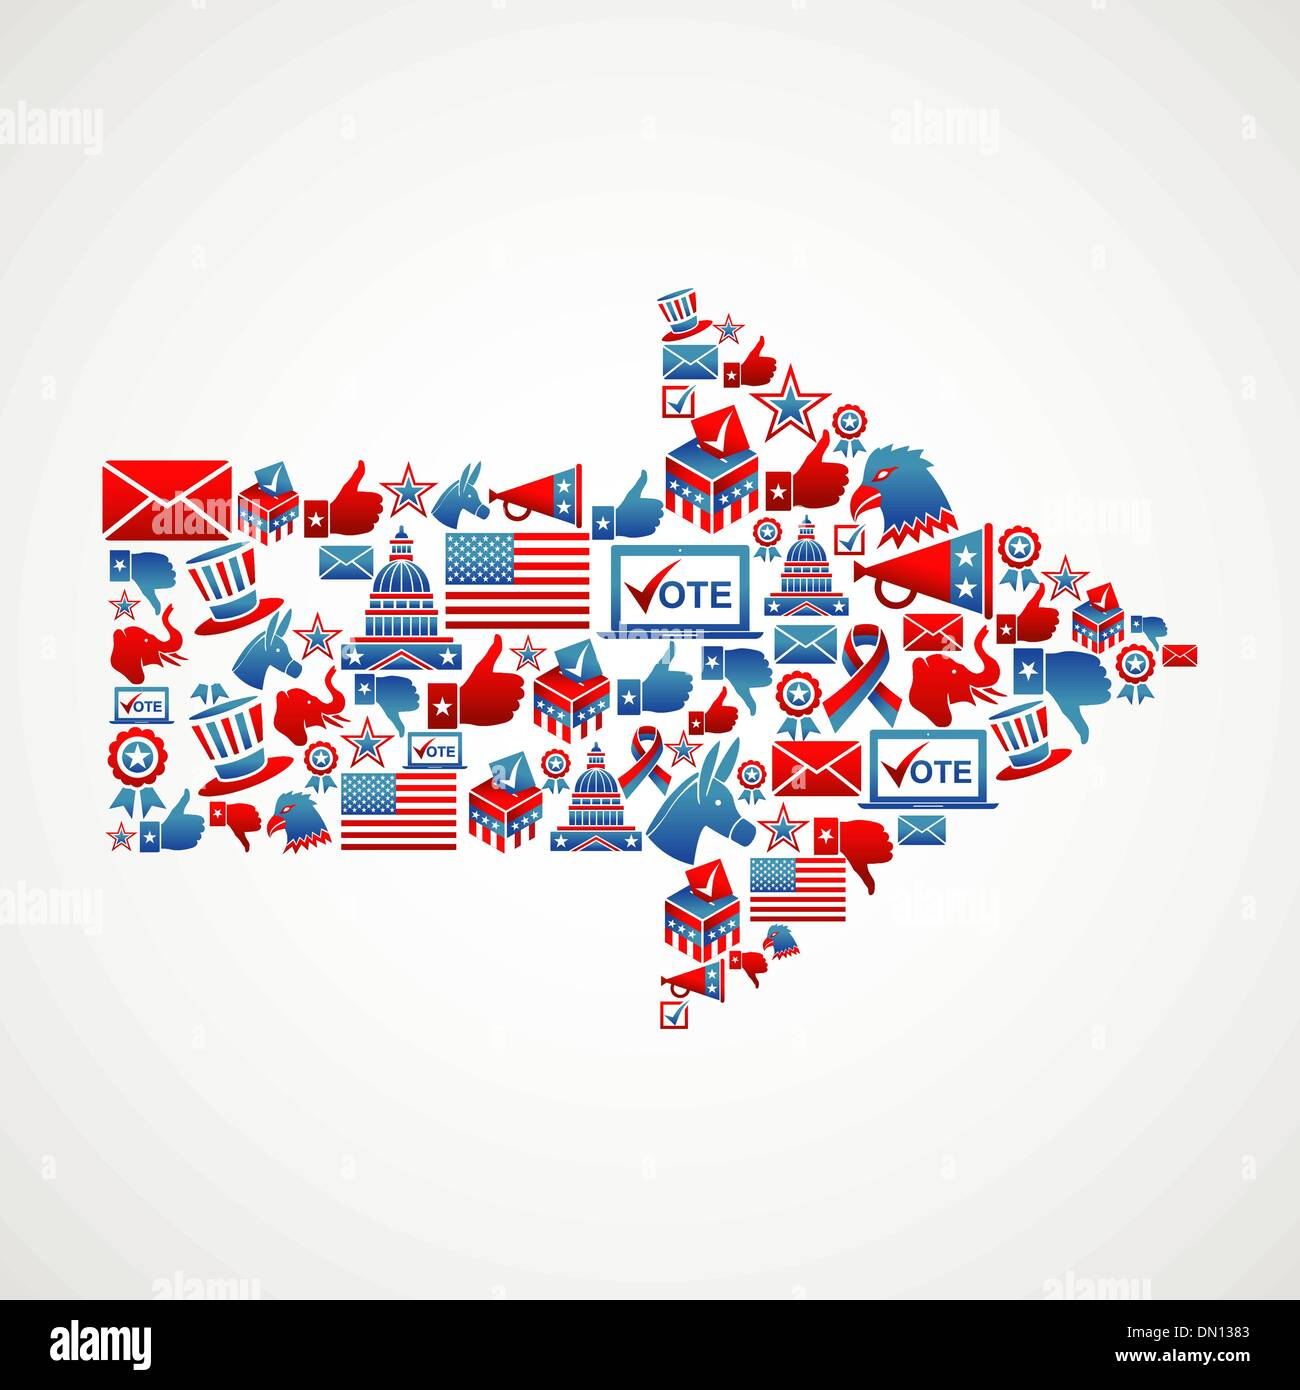 US elections icons in arrow shape - Stock Image